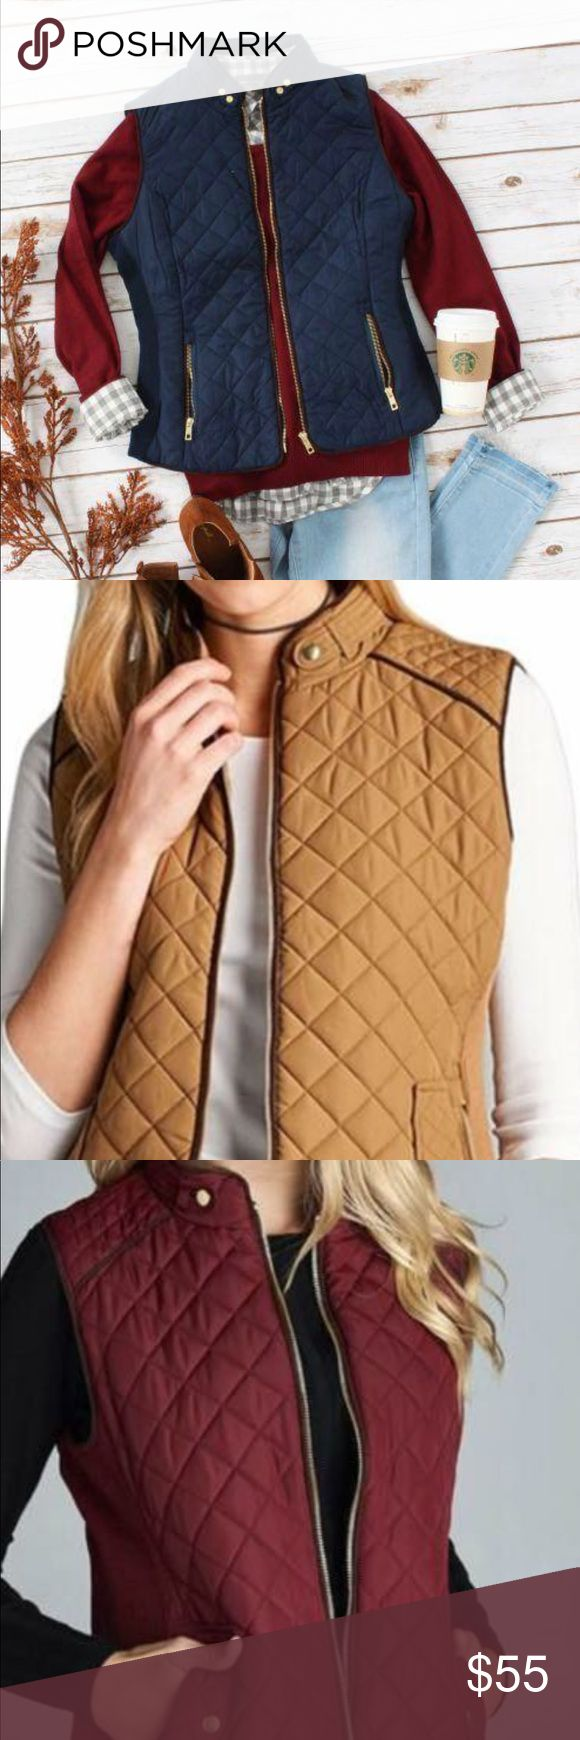 Quilted Puffer Padded Vest essentials! Quilted Puffer Padded Vest. These padded vest are essentials!! They feature suede piping detail and come in 3 amazing colors-navy, burgundy & camel! You'll love it so much you'll want one of each. The outfit options are limitless!  fit: true to size fabric: 100% poly Jackets & Coats Vests